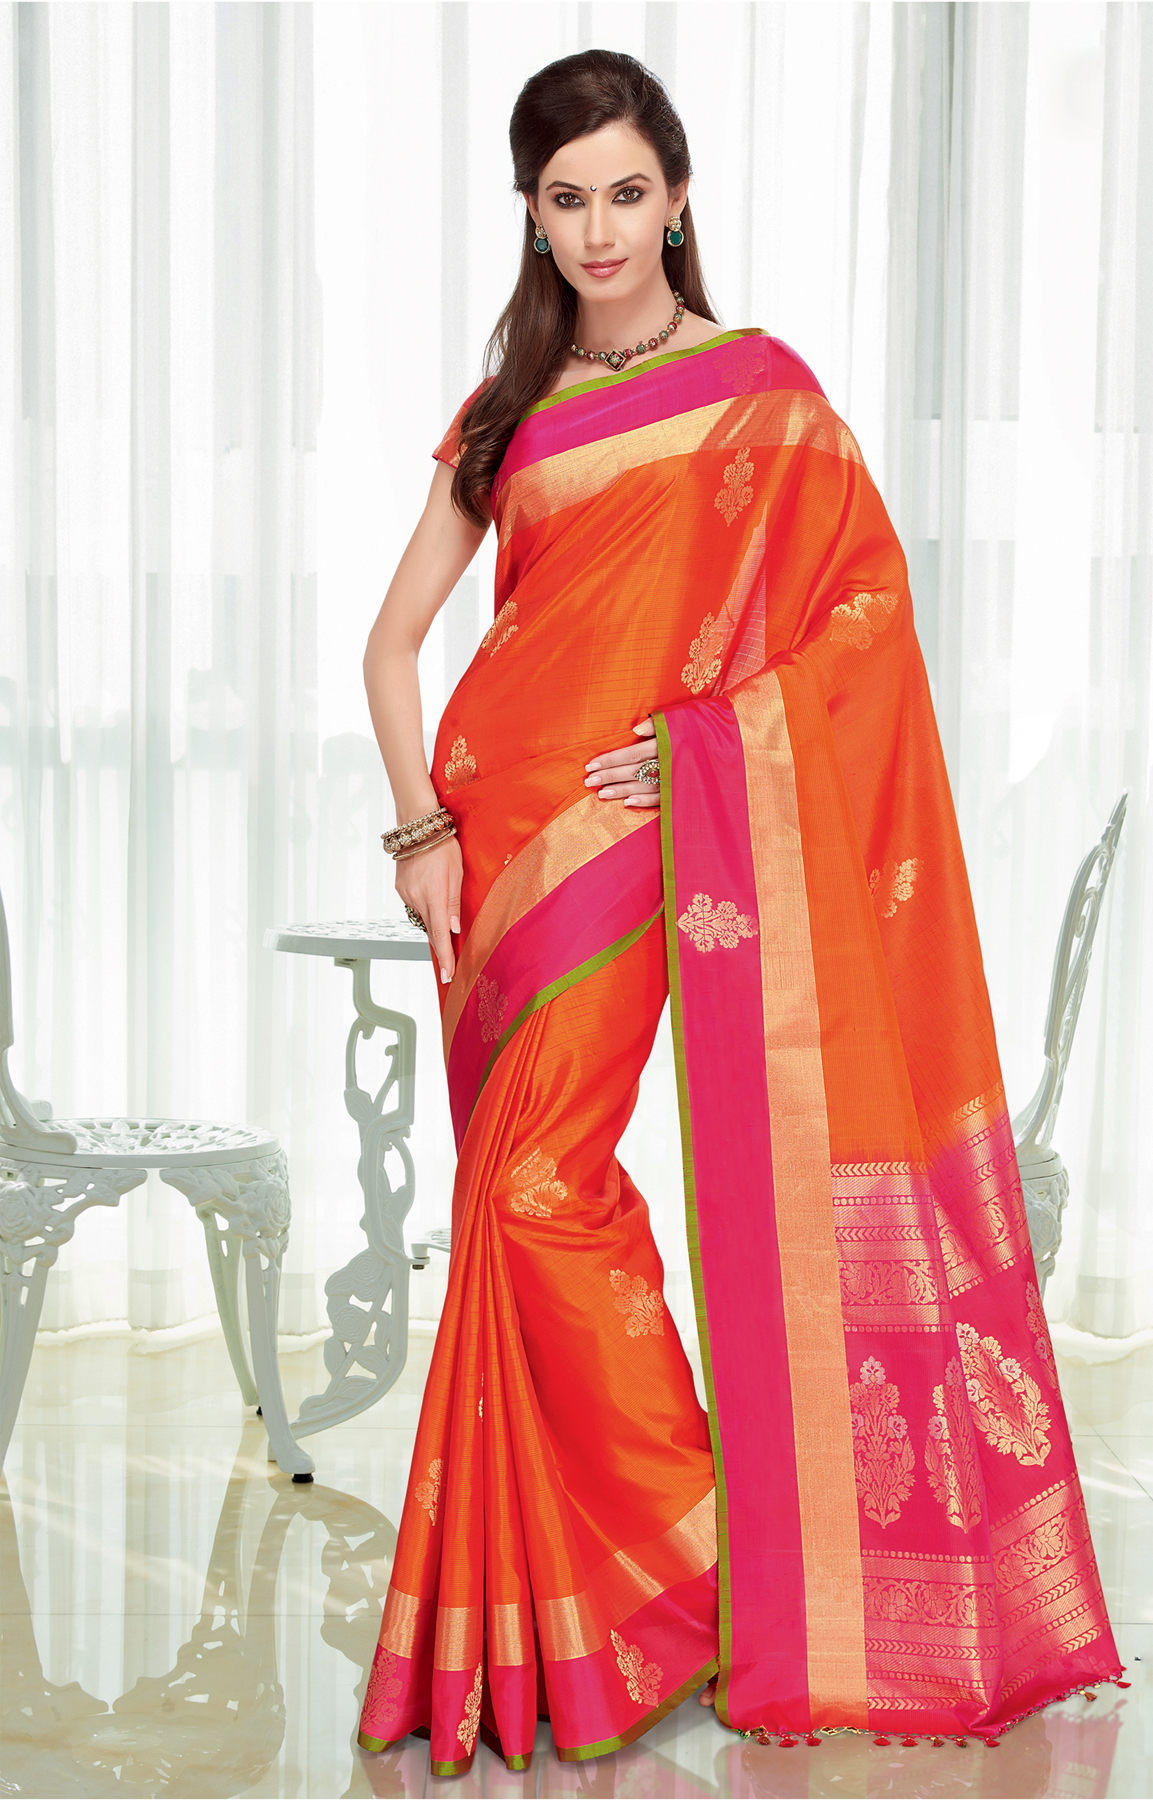 847a6c016 Orange pure silk saree with a wide pink and gold border - RmKV Silks ...